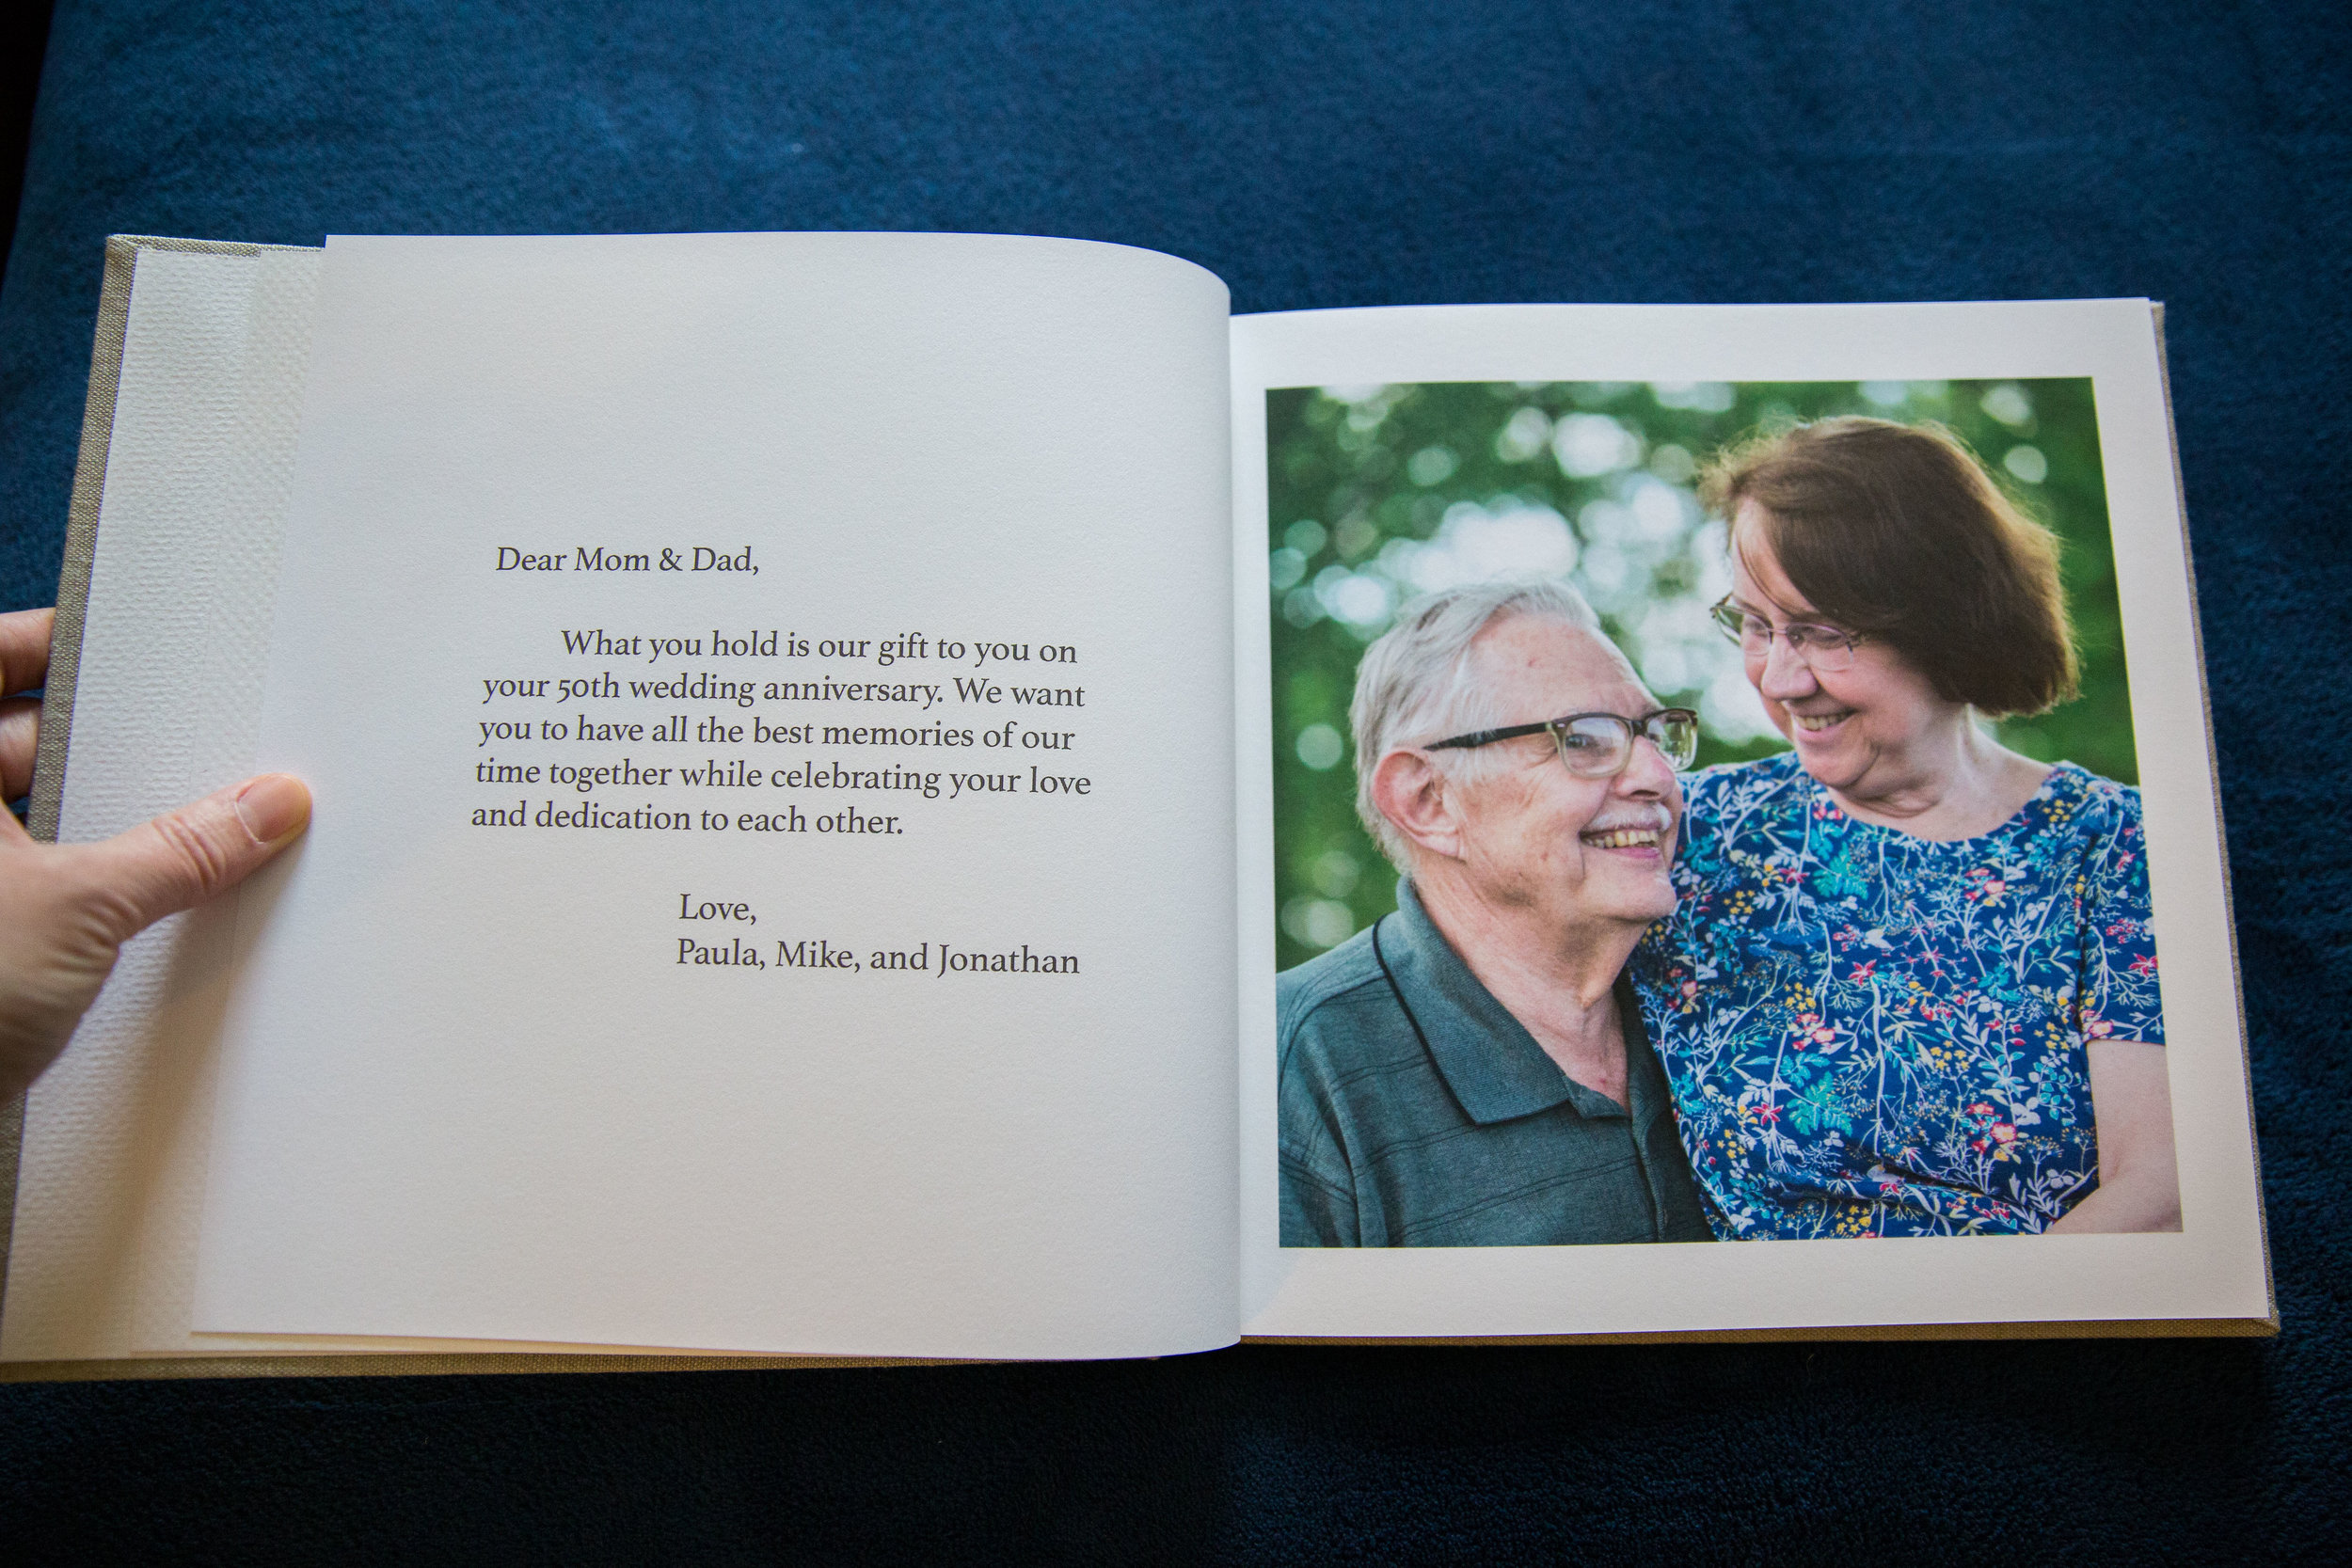 This couple's adult children gifted a photo session and fine art photo book to their parents in celebration of their 50th wedding anniversary. ♥️